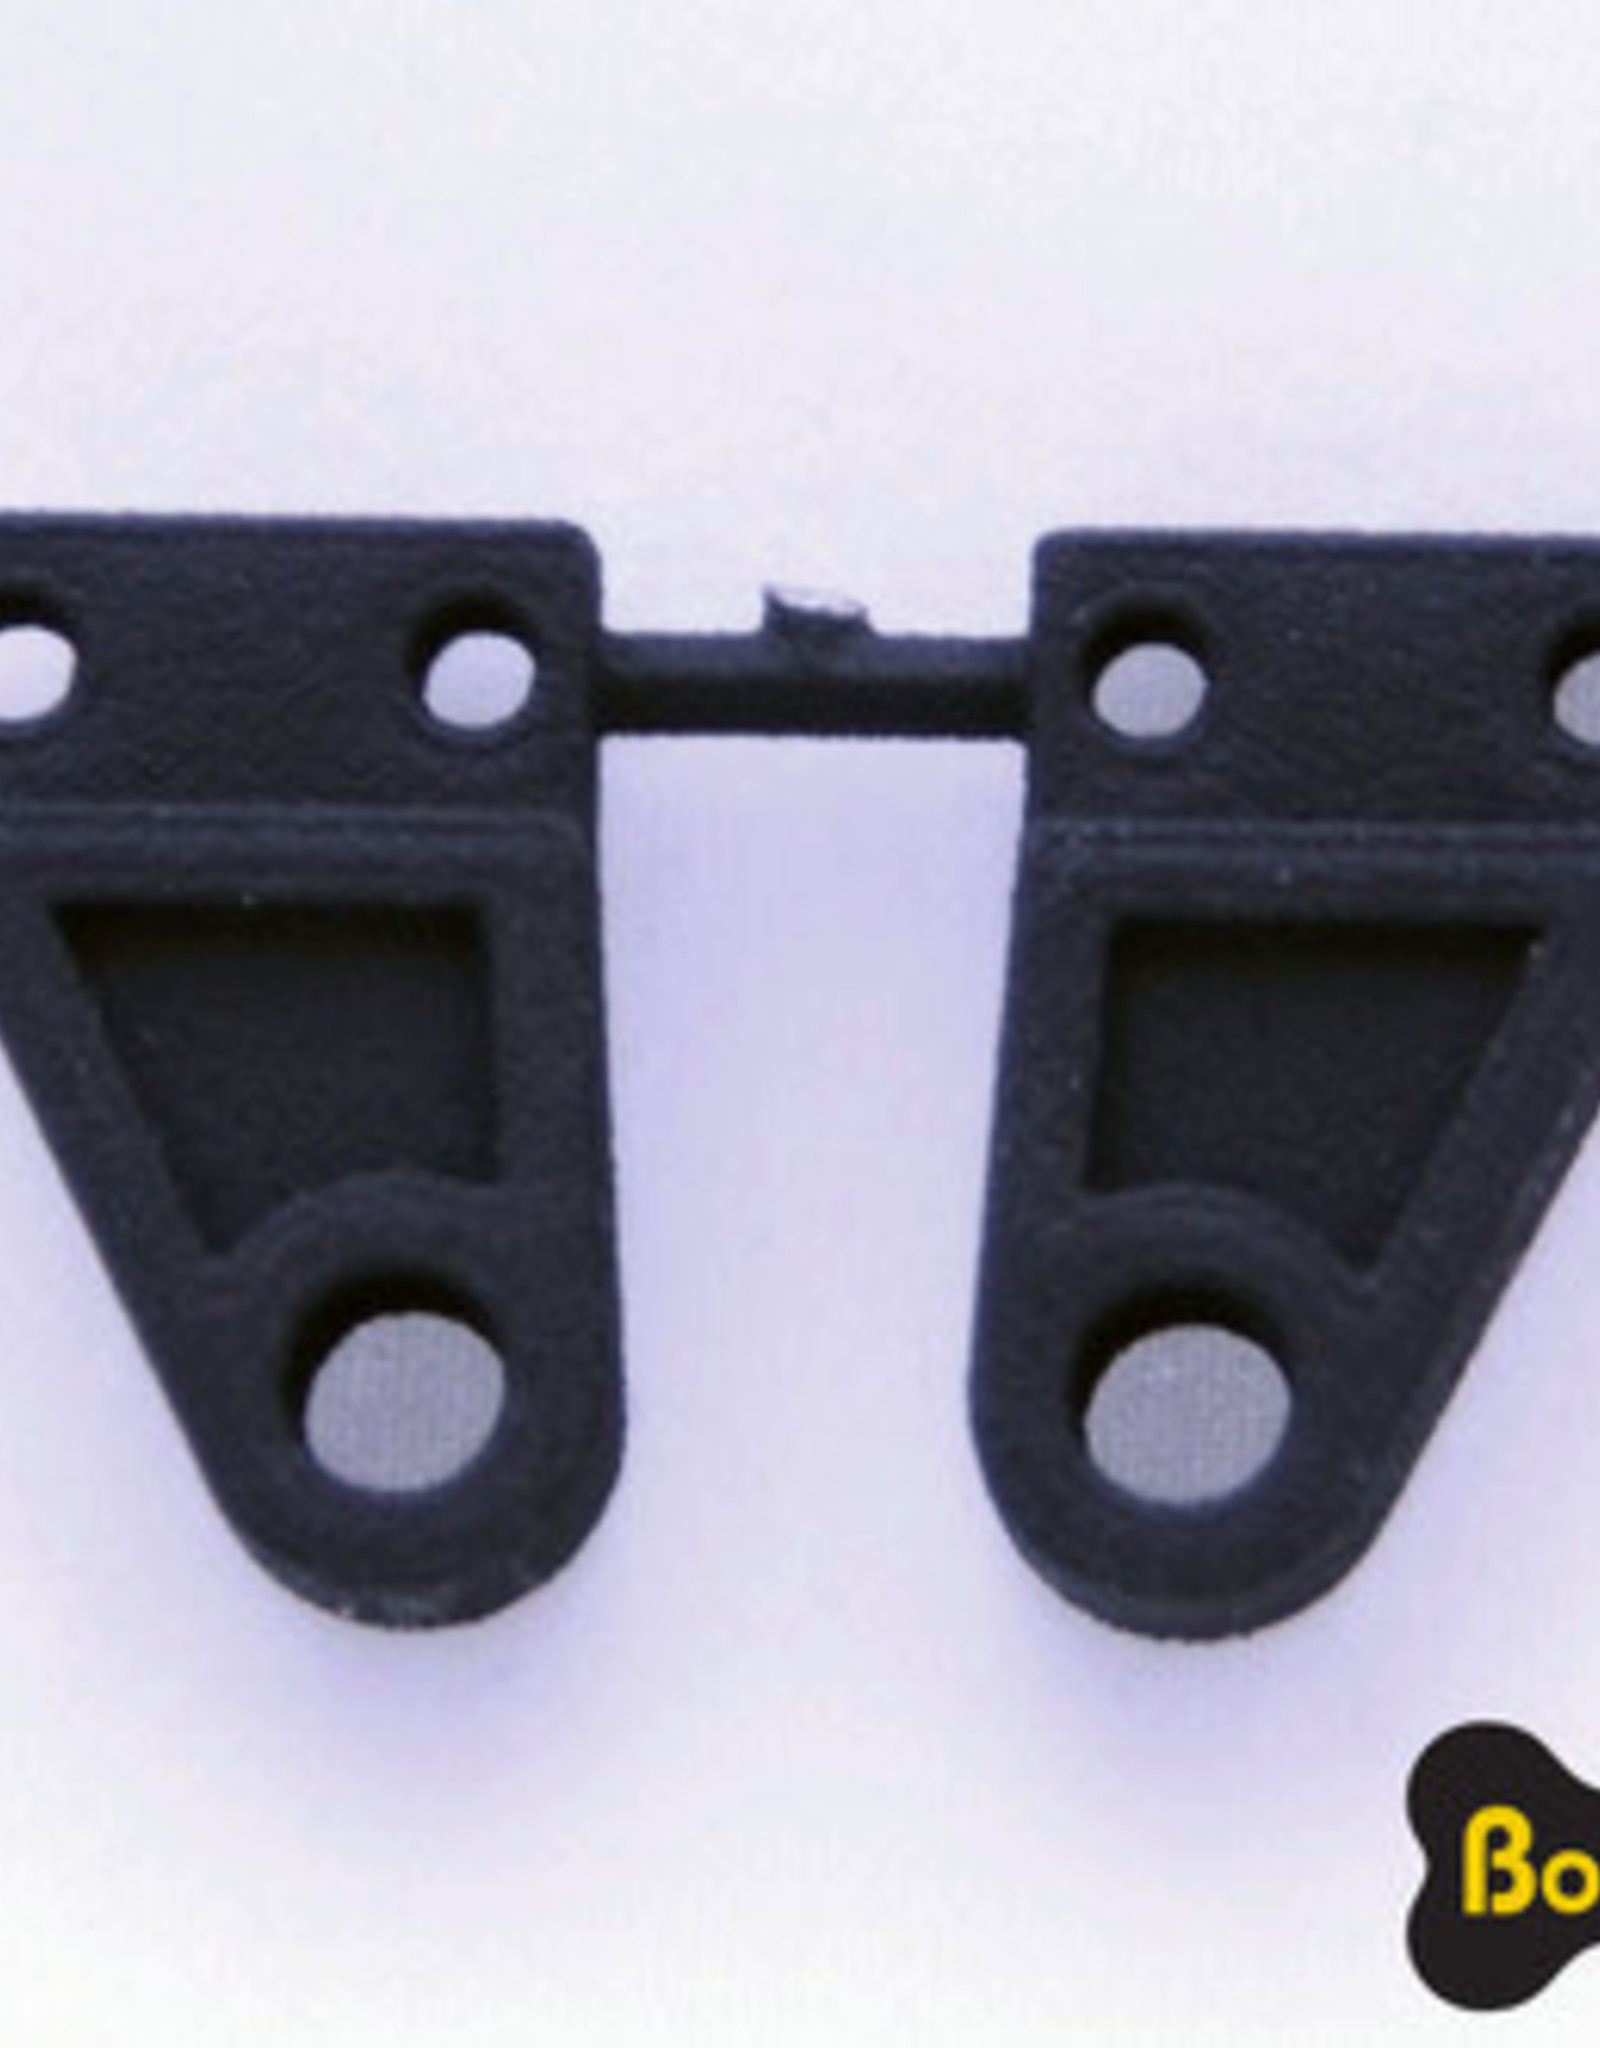 BowhouseRC Rear Leaf Shackle Mount for TF2